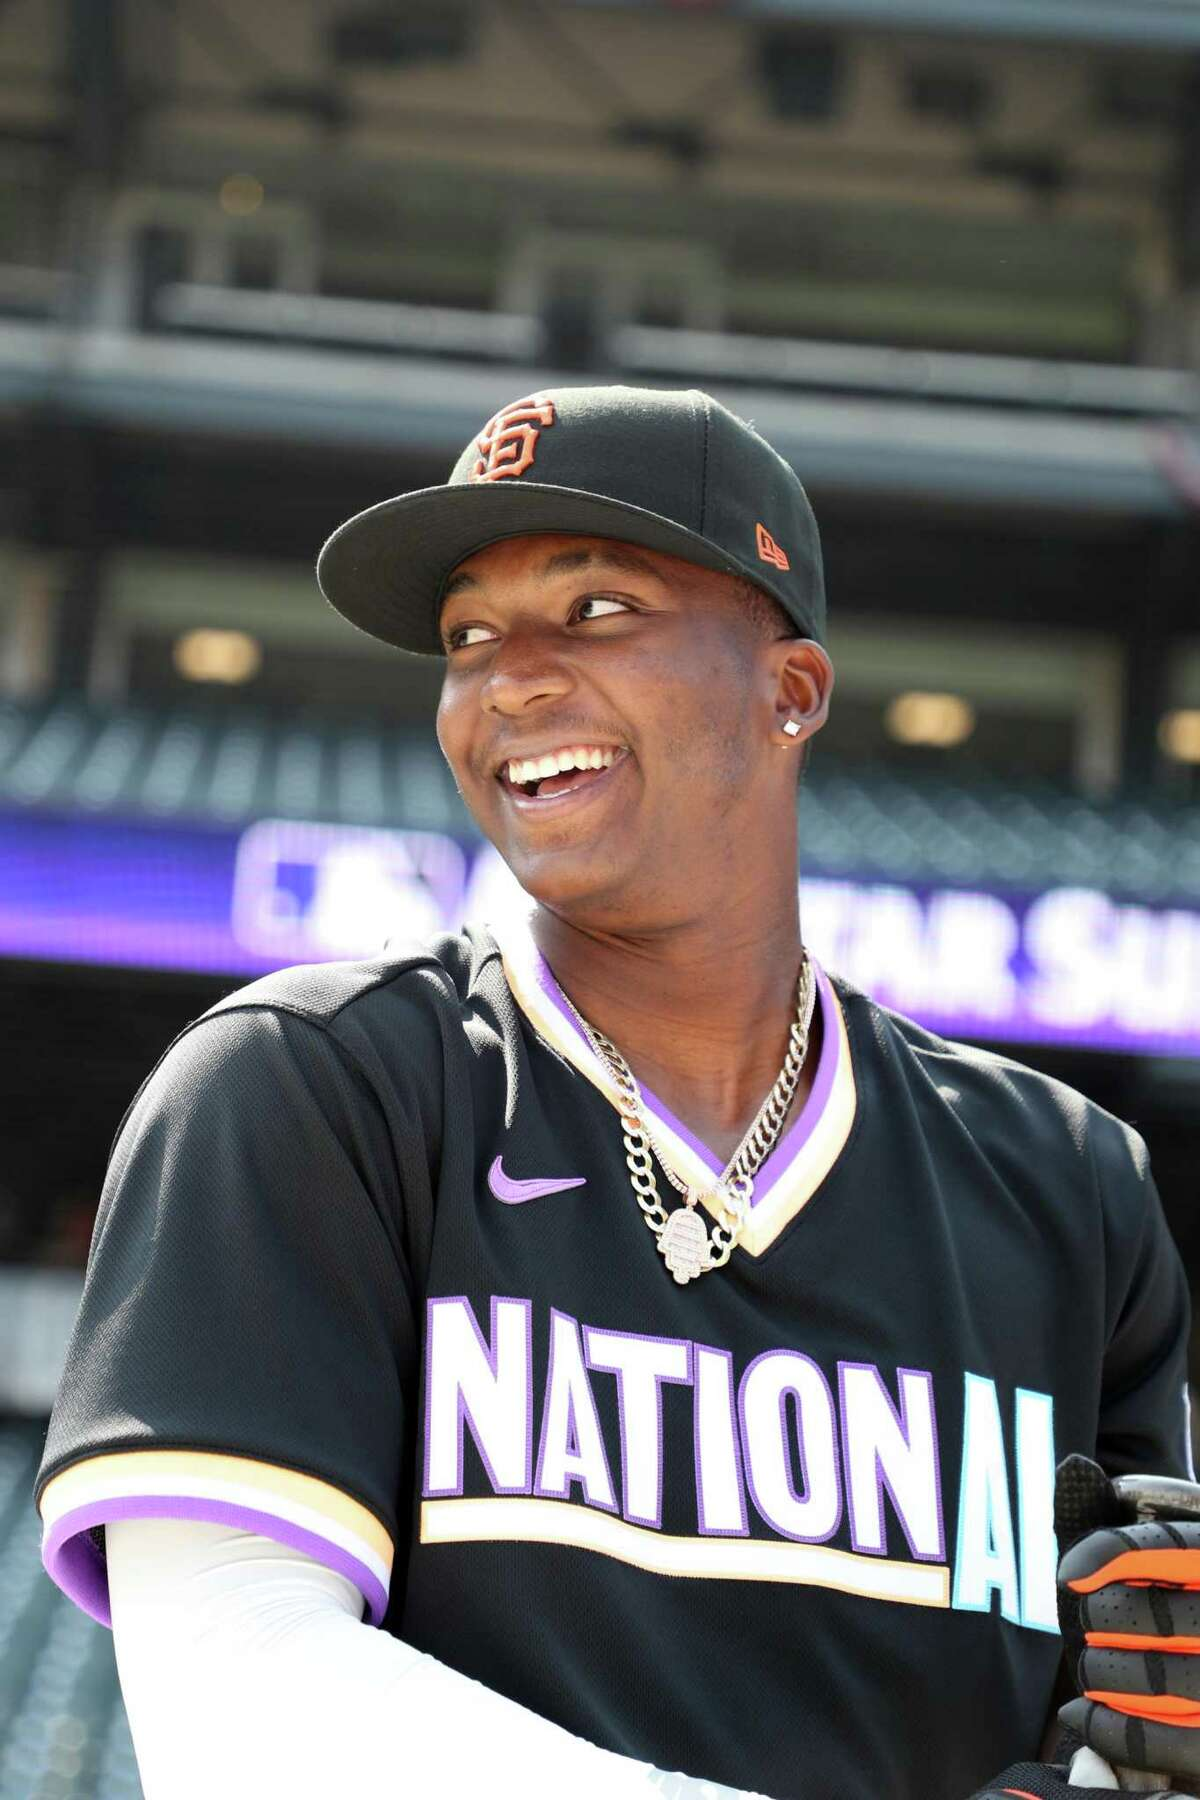 DENVER, CO - JULY 11: Marco Luciano #10 of the National League Team smiles before the 2021 Sirius XM Futures Game at Coors Field on Sunday, July 11, 2021 in Denver, Colorado. (Photo by Rob Tringali/MLB Photos via Getty Images)